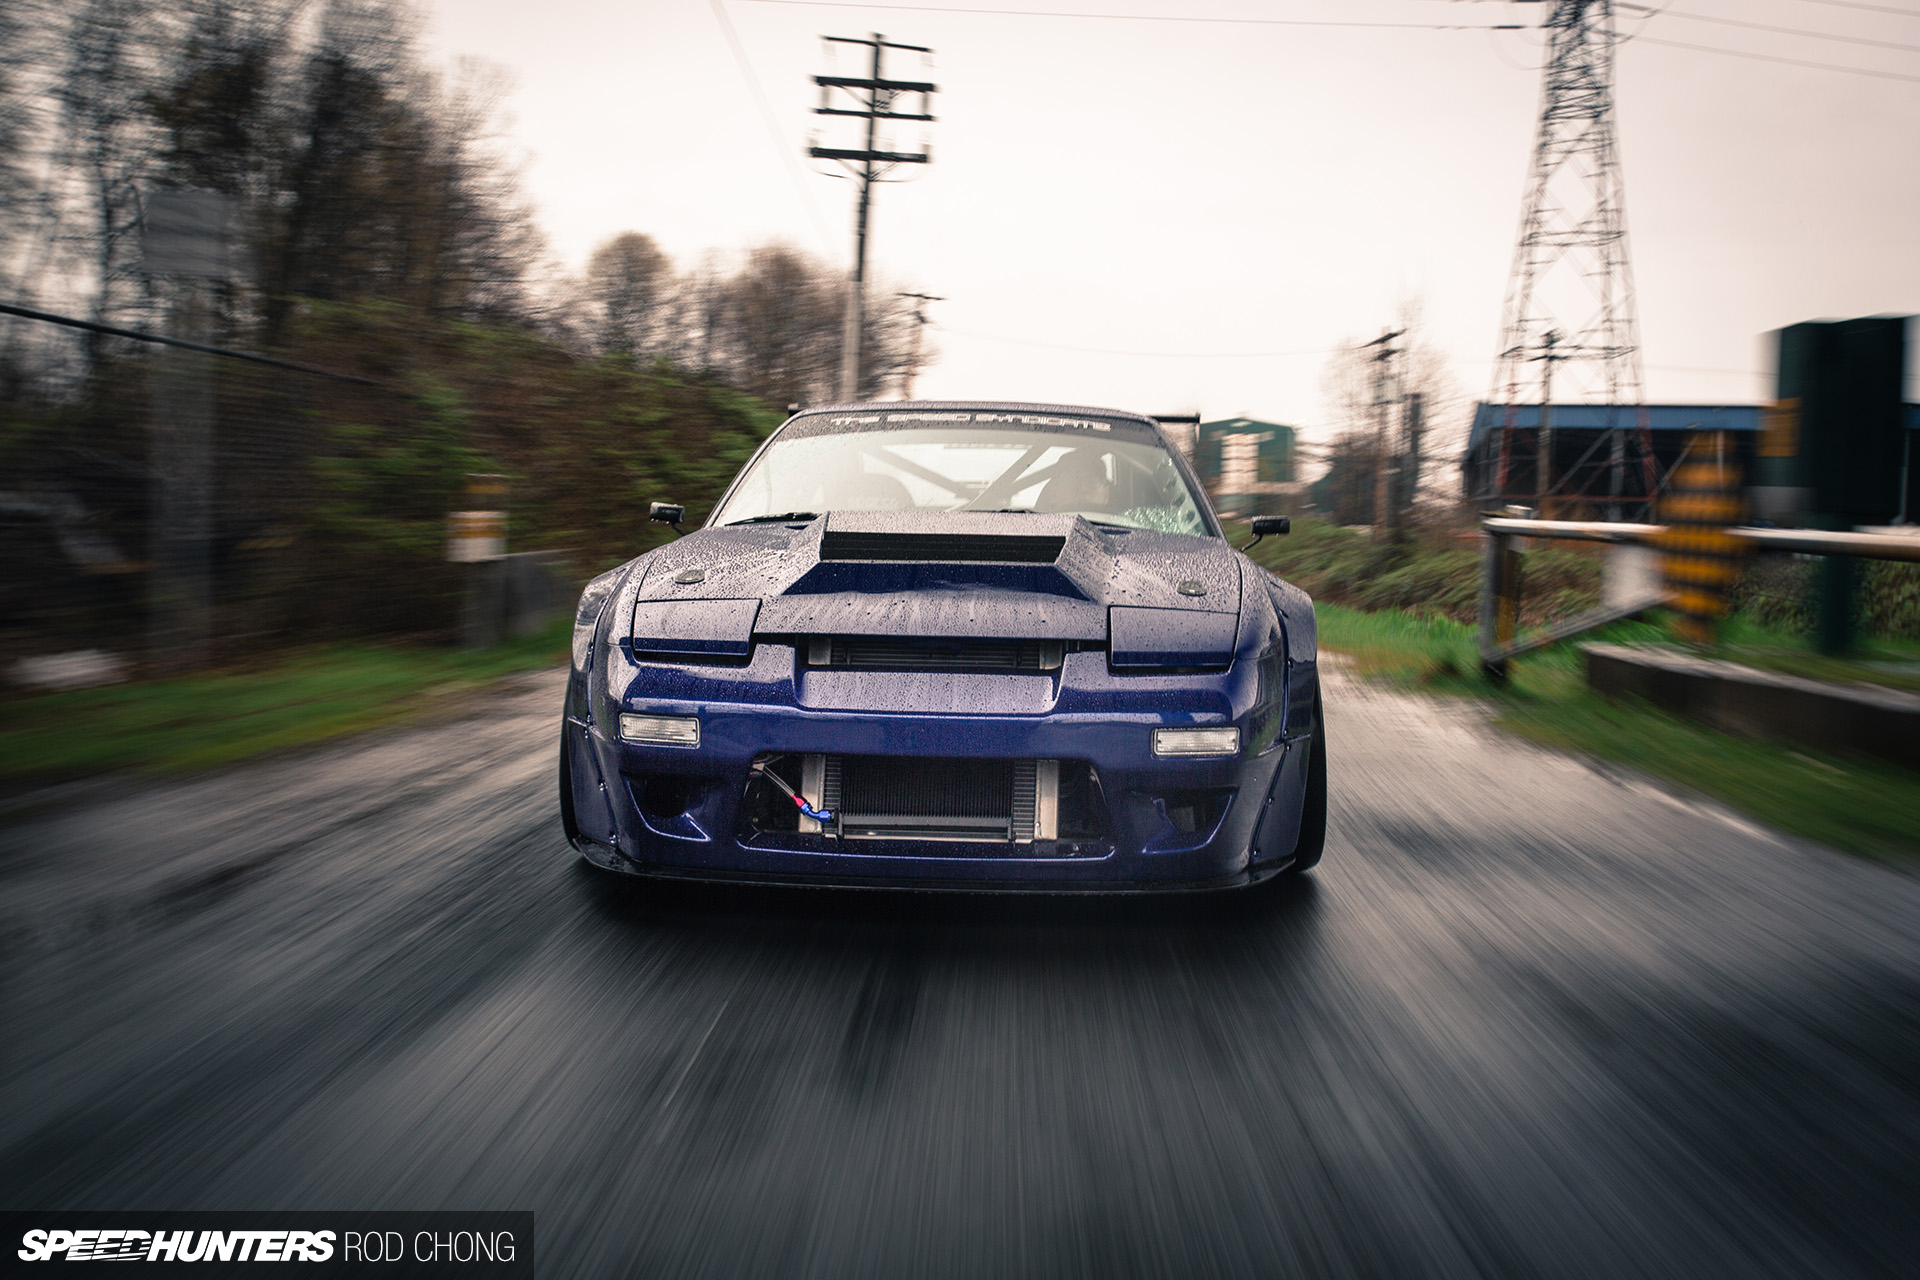 Best Car Drifting Wallpapers Grip Bunny A Different Breed Of S13 Speedhunters